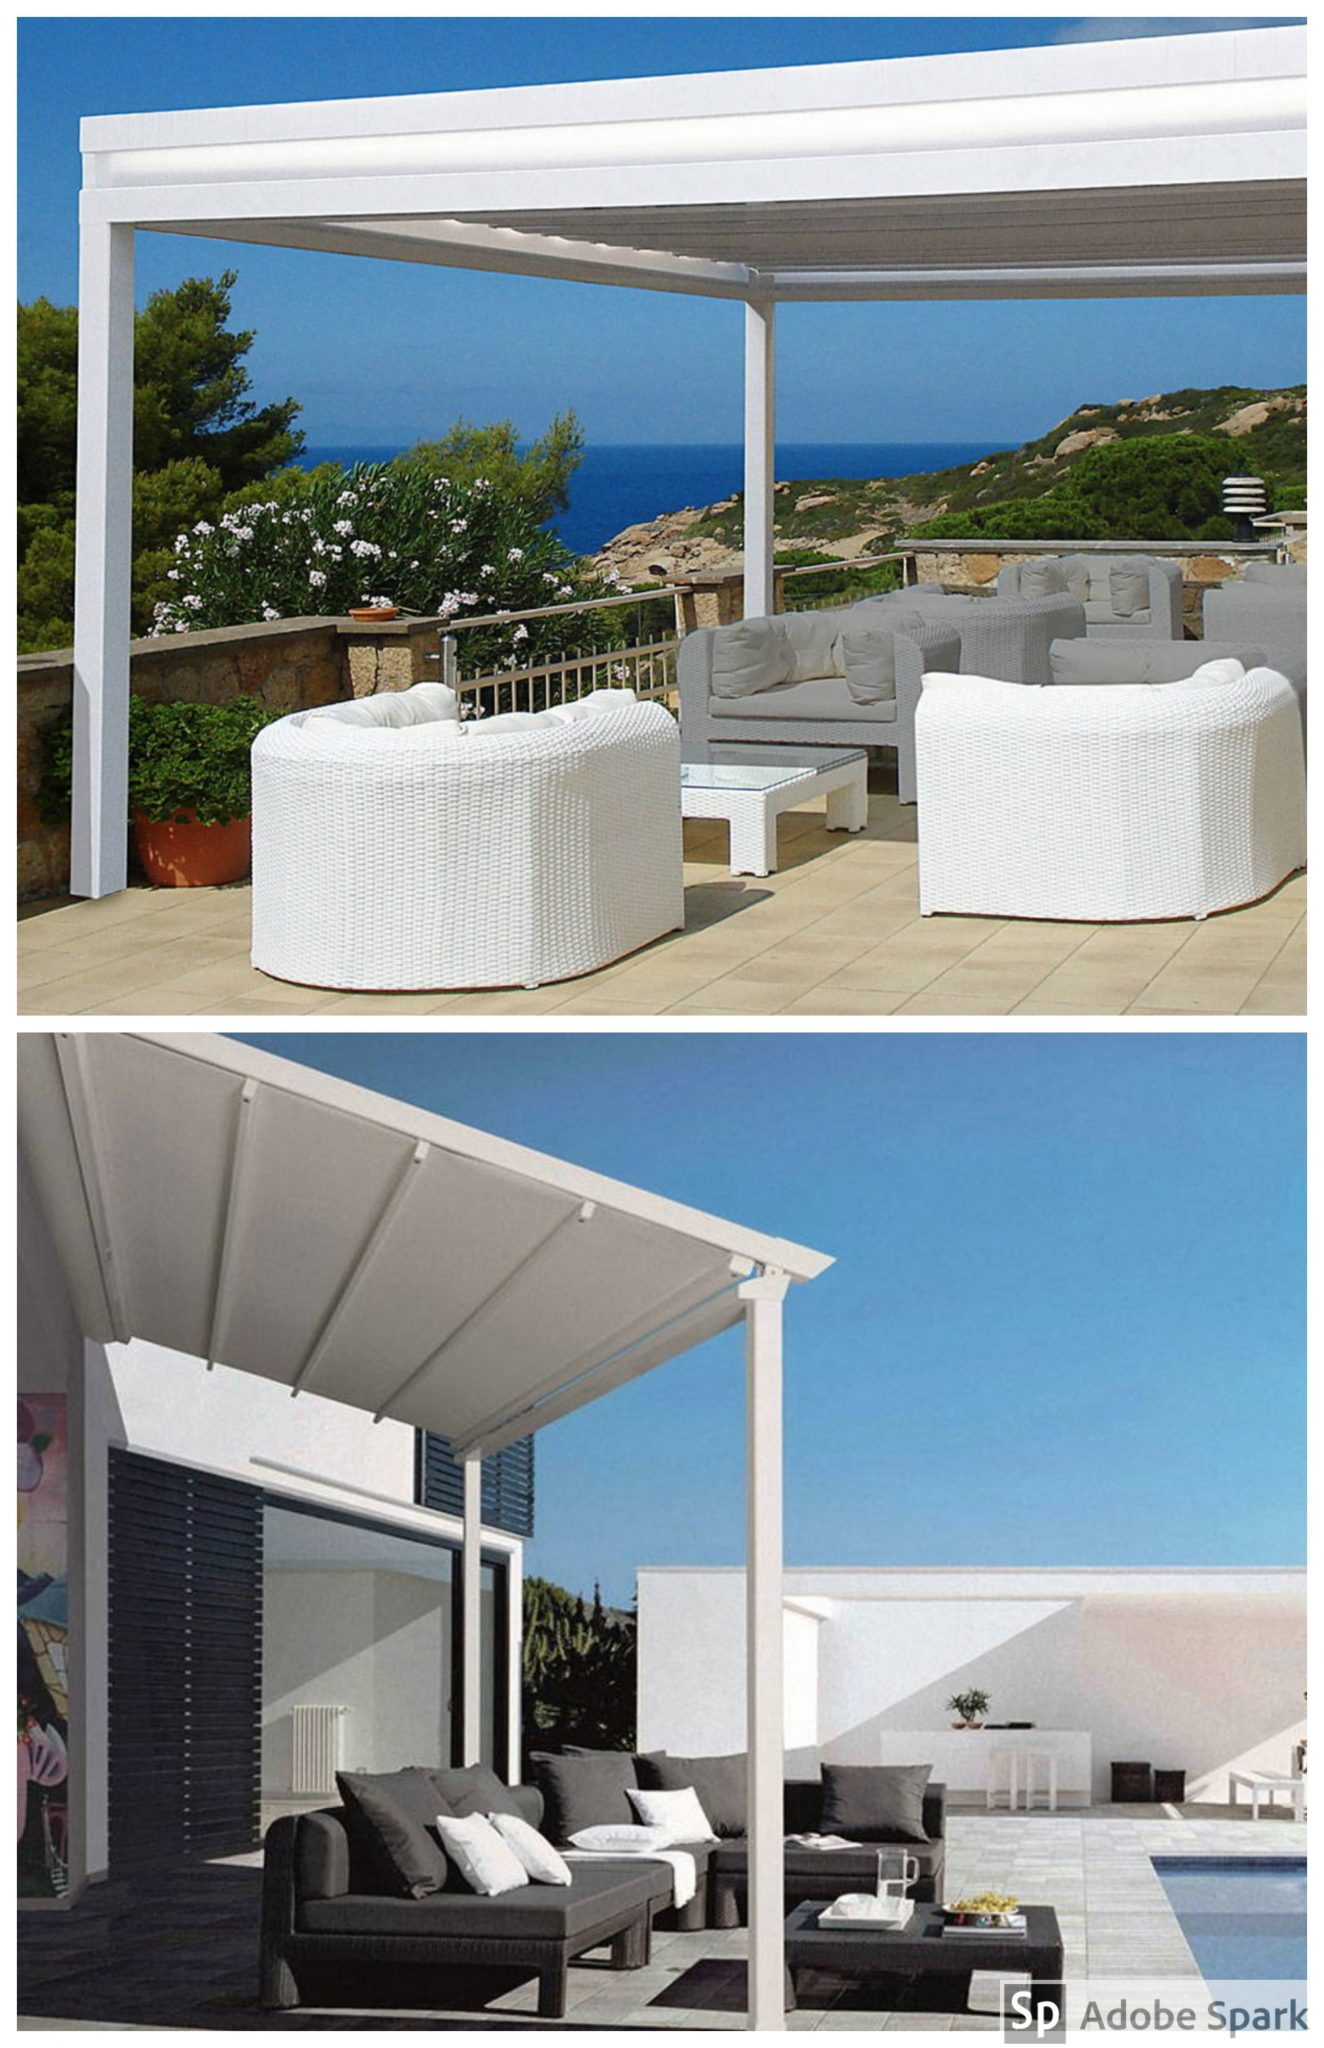 Retractable Awnings Shade Systems